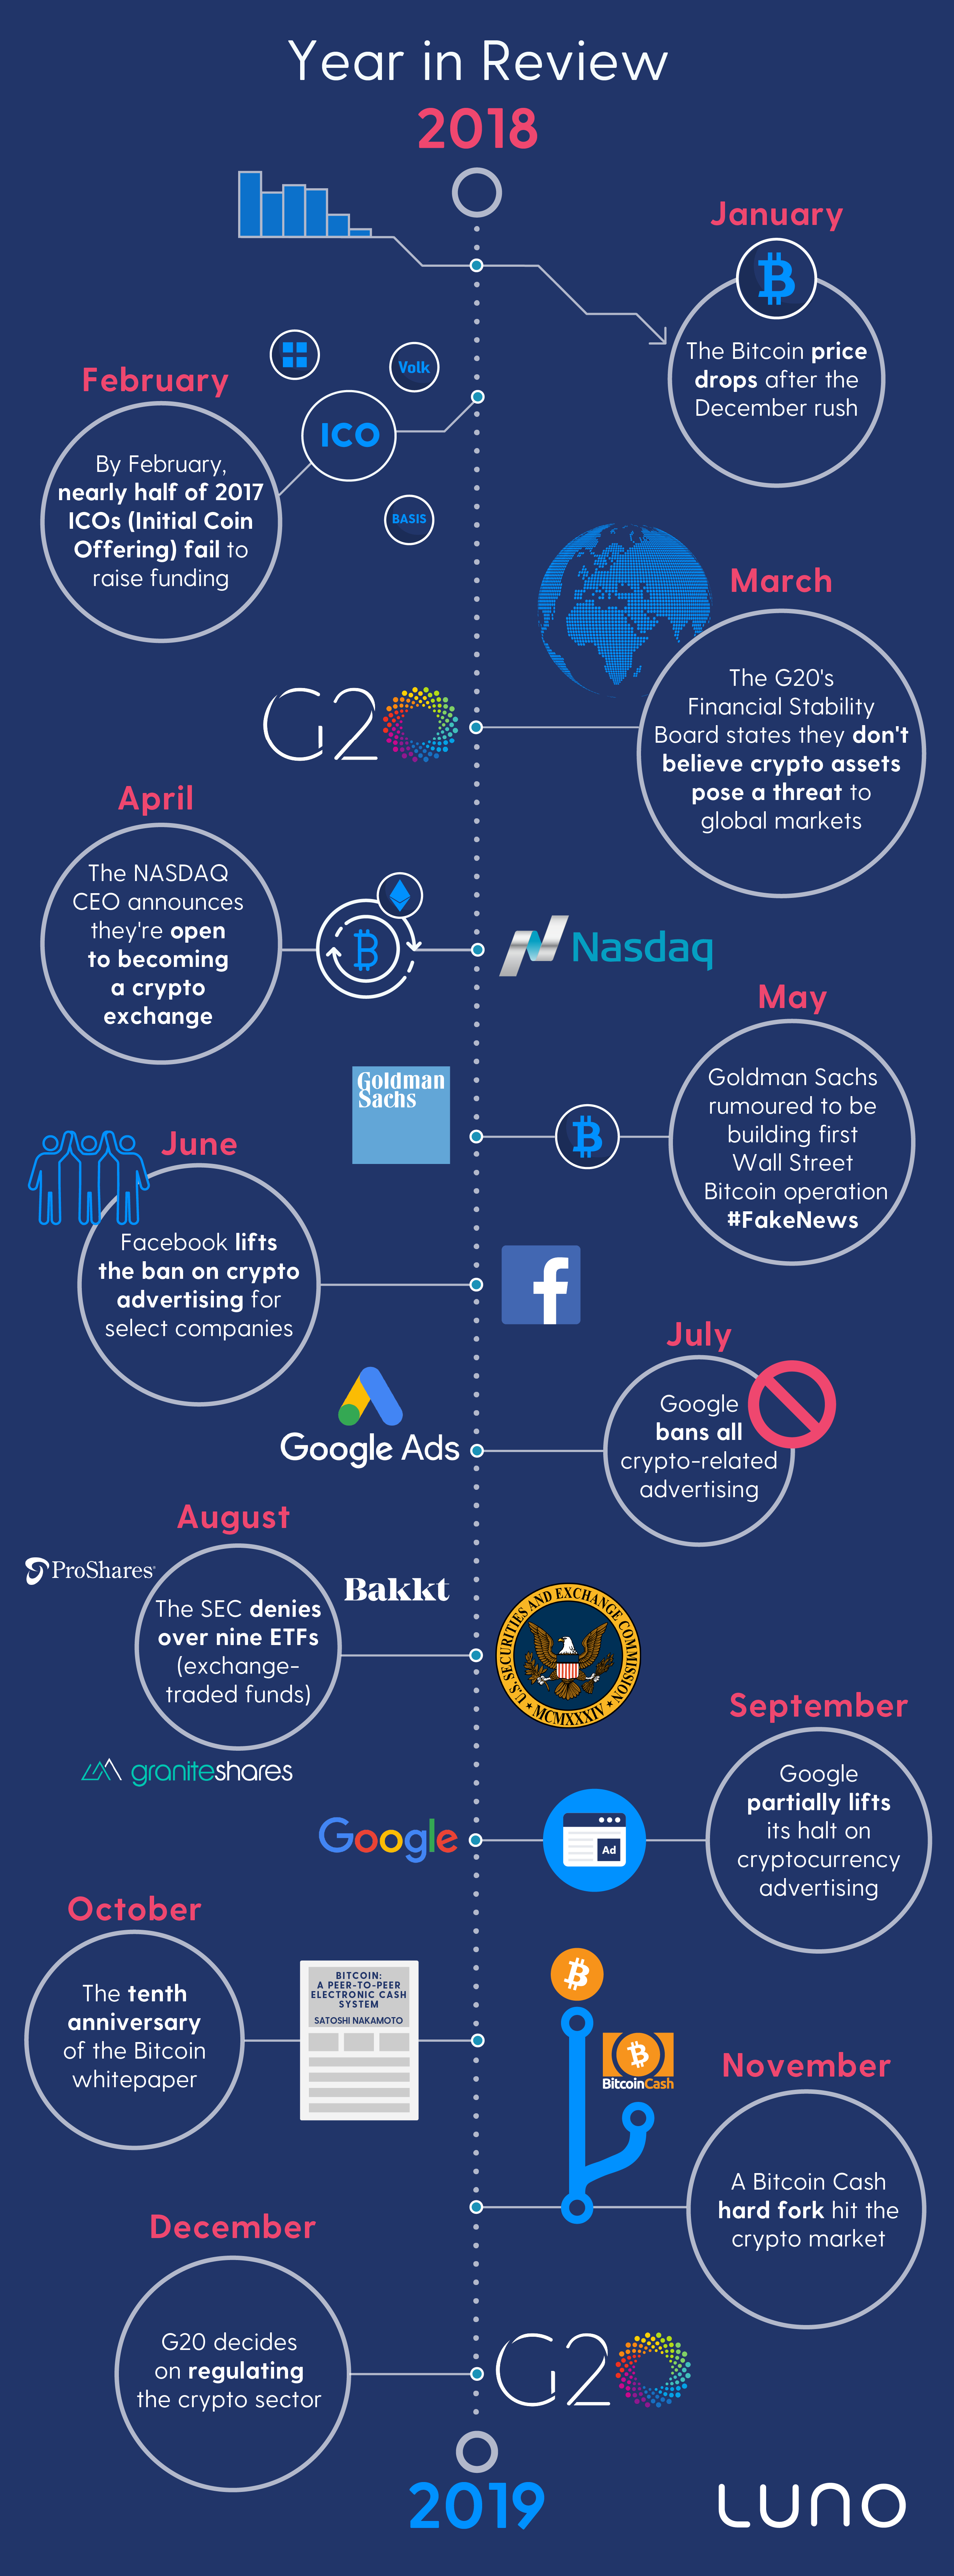 Bitcoin year in review infographic - UPDATED (1)